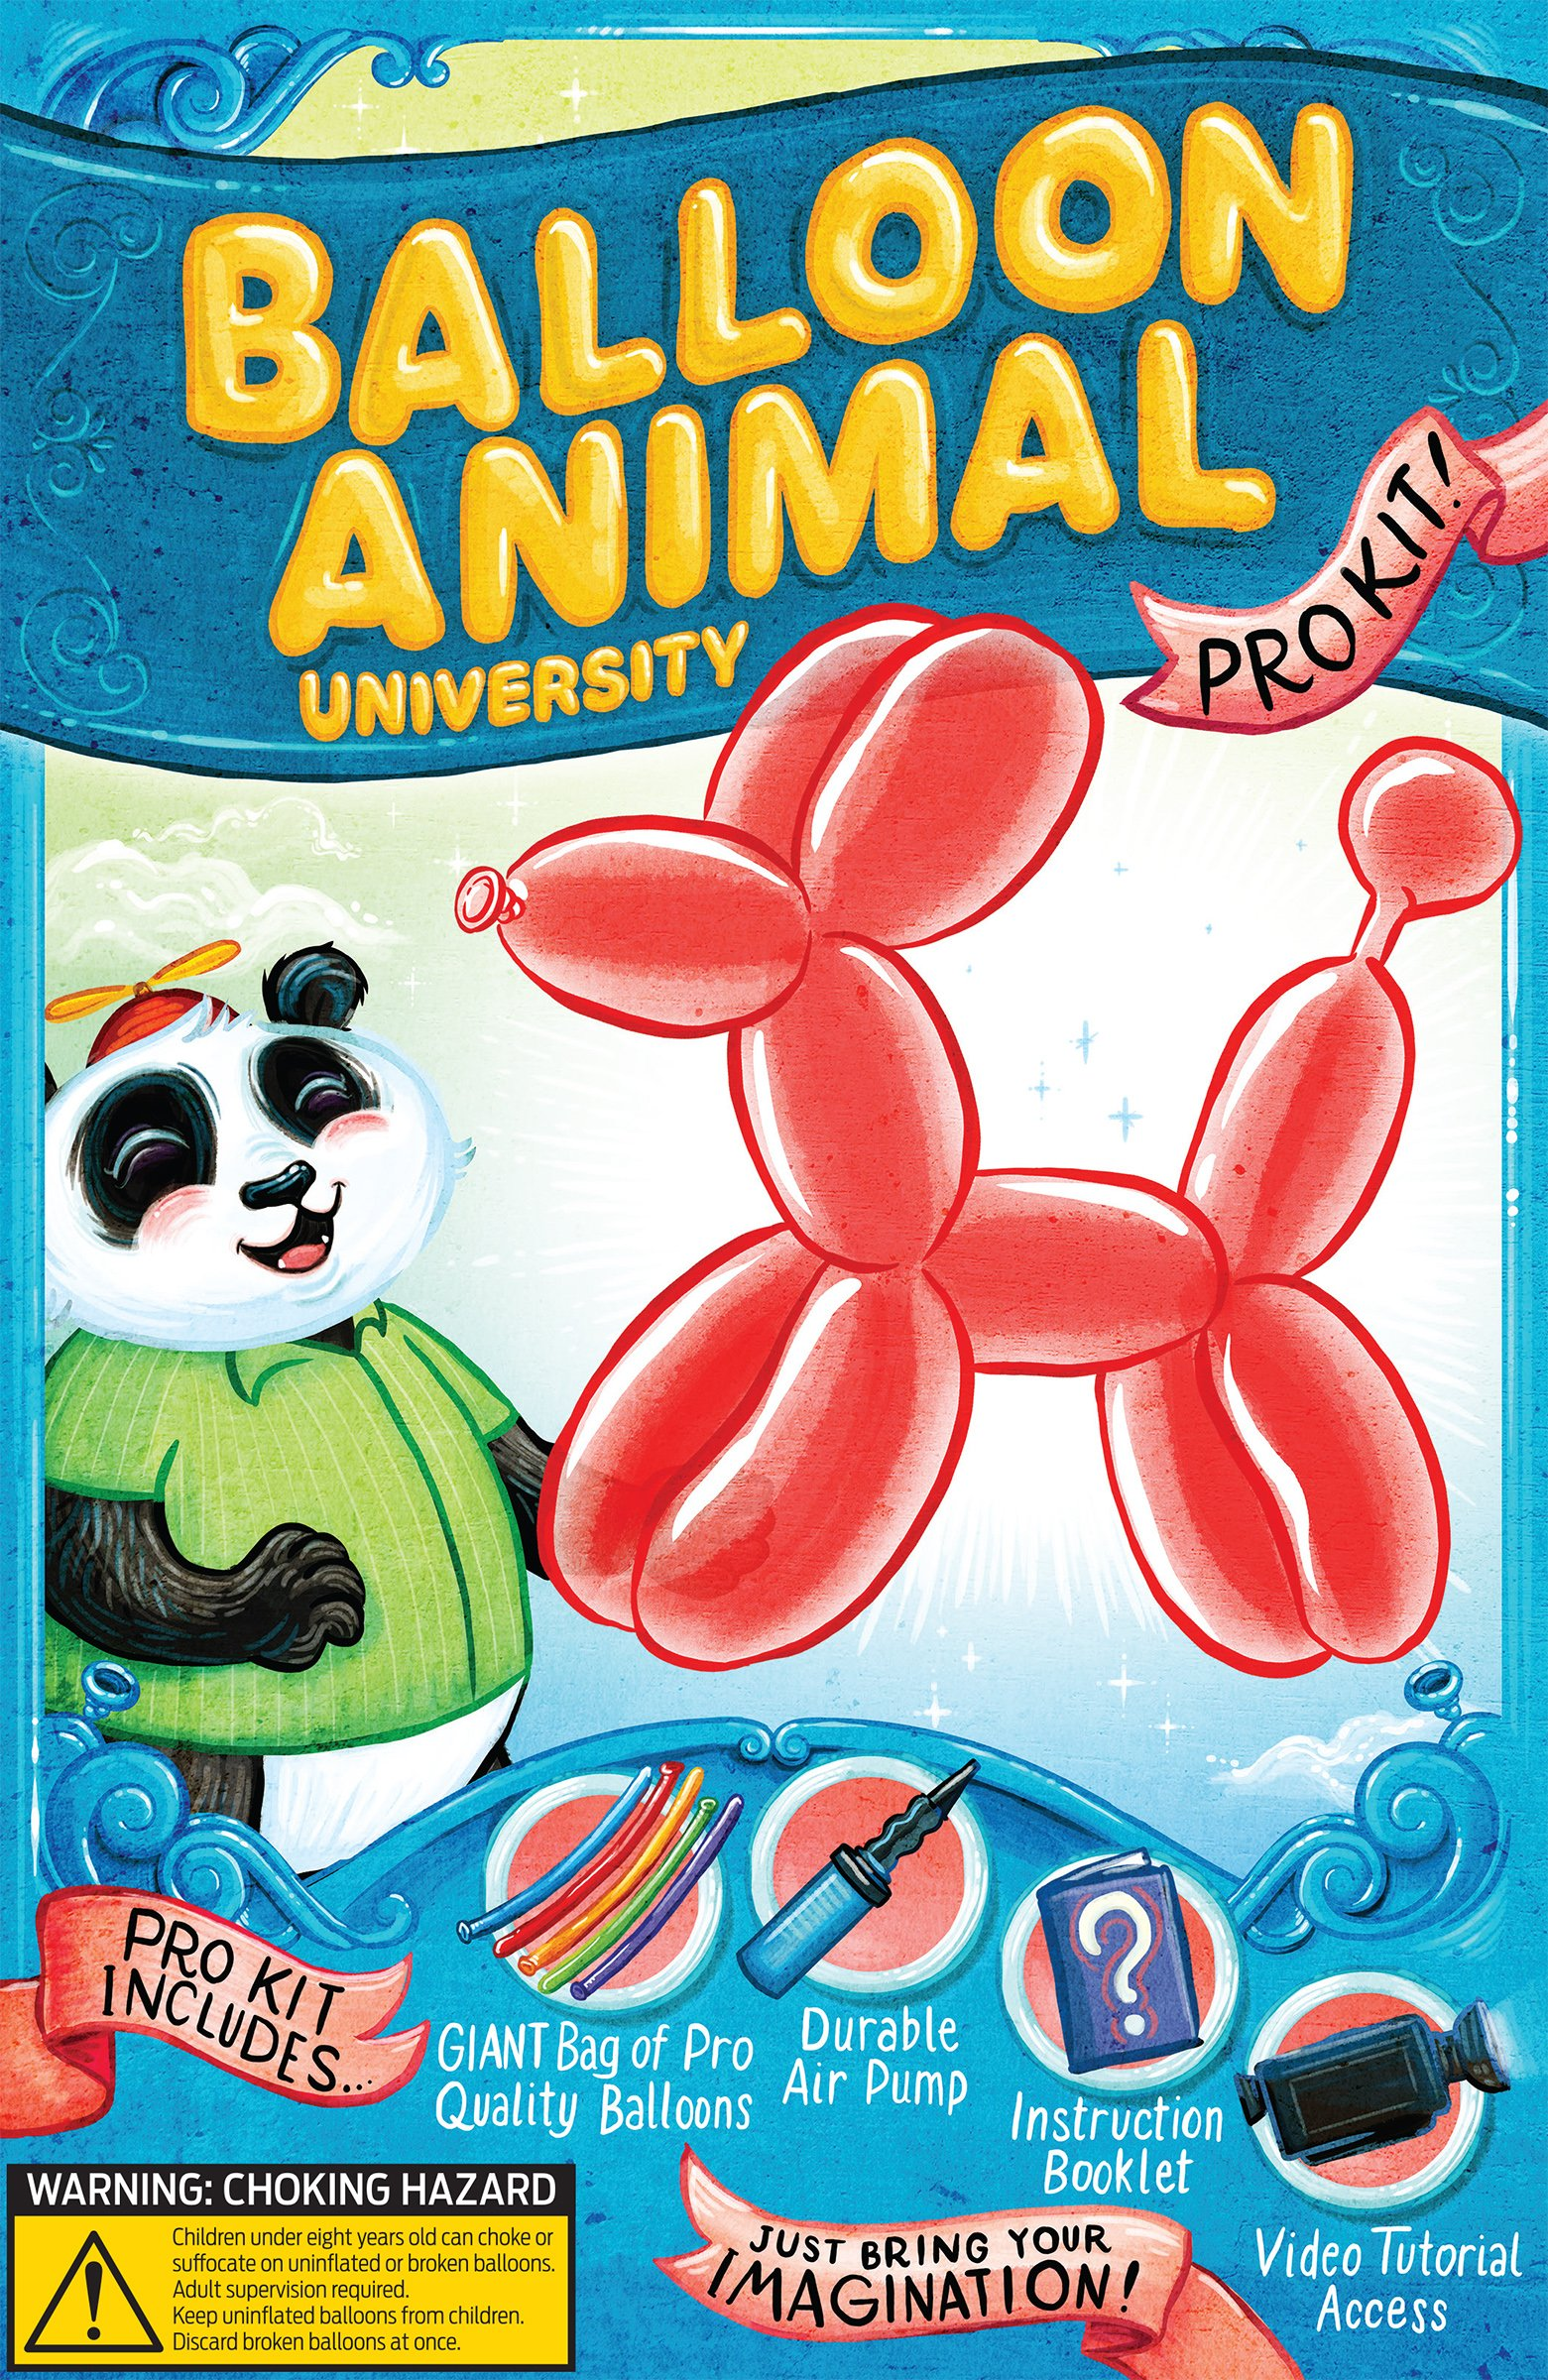 Balloon Animal University PRO Kit with 100 balloons, Now With NEW Sculptures! How-To Videos, Qualatex Balloons, Pump, Instruction Book. Learn to Make Balloon Animals Fun Party Activity Holiday Gift by Imagination Overdrive (Image #3)